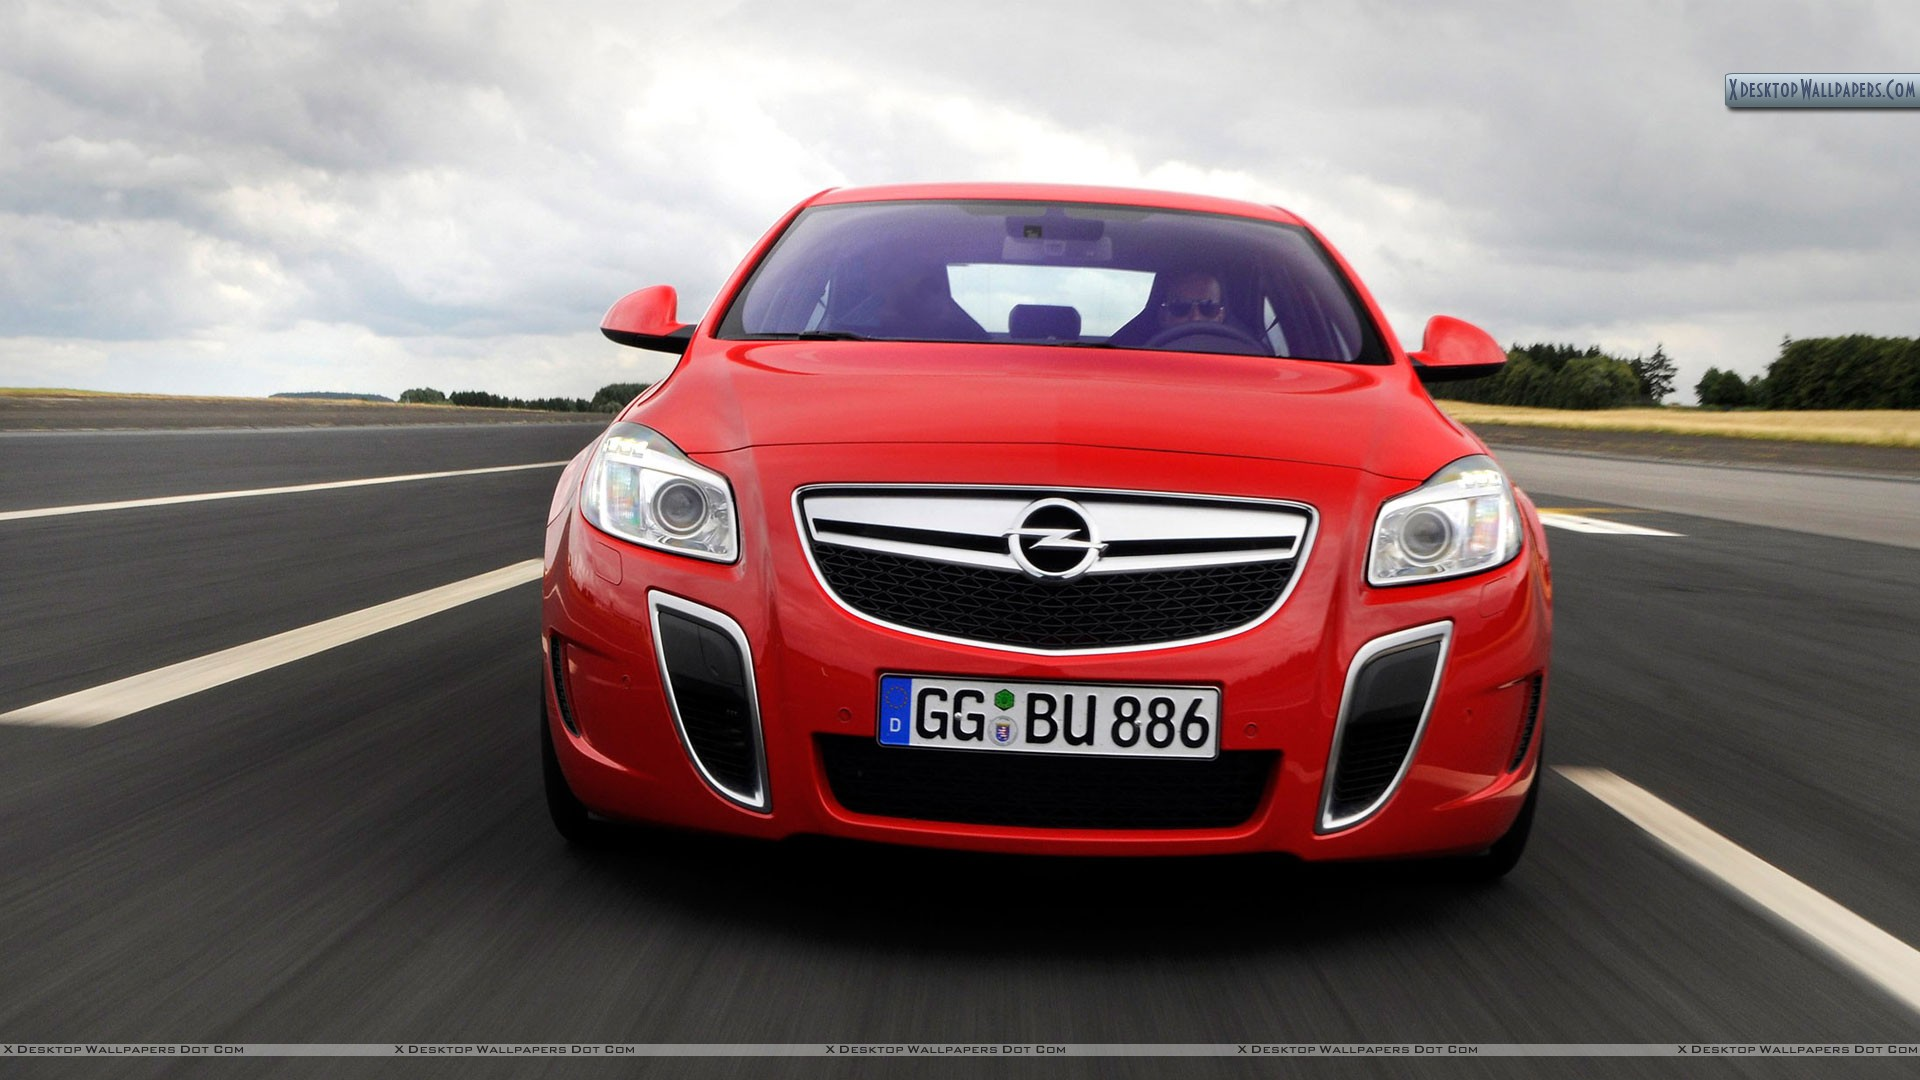 Opel Insignia Opc Unlimited Red Color Free Download Image Of Wallpaper